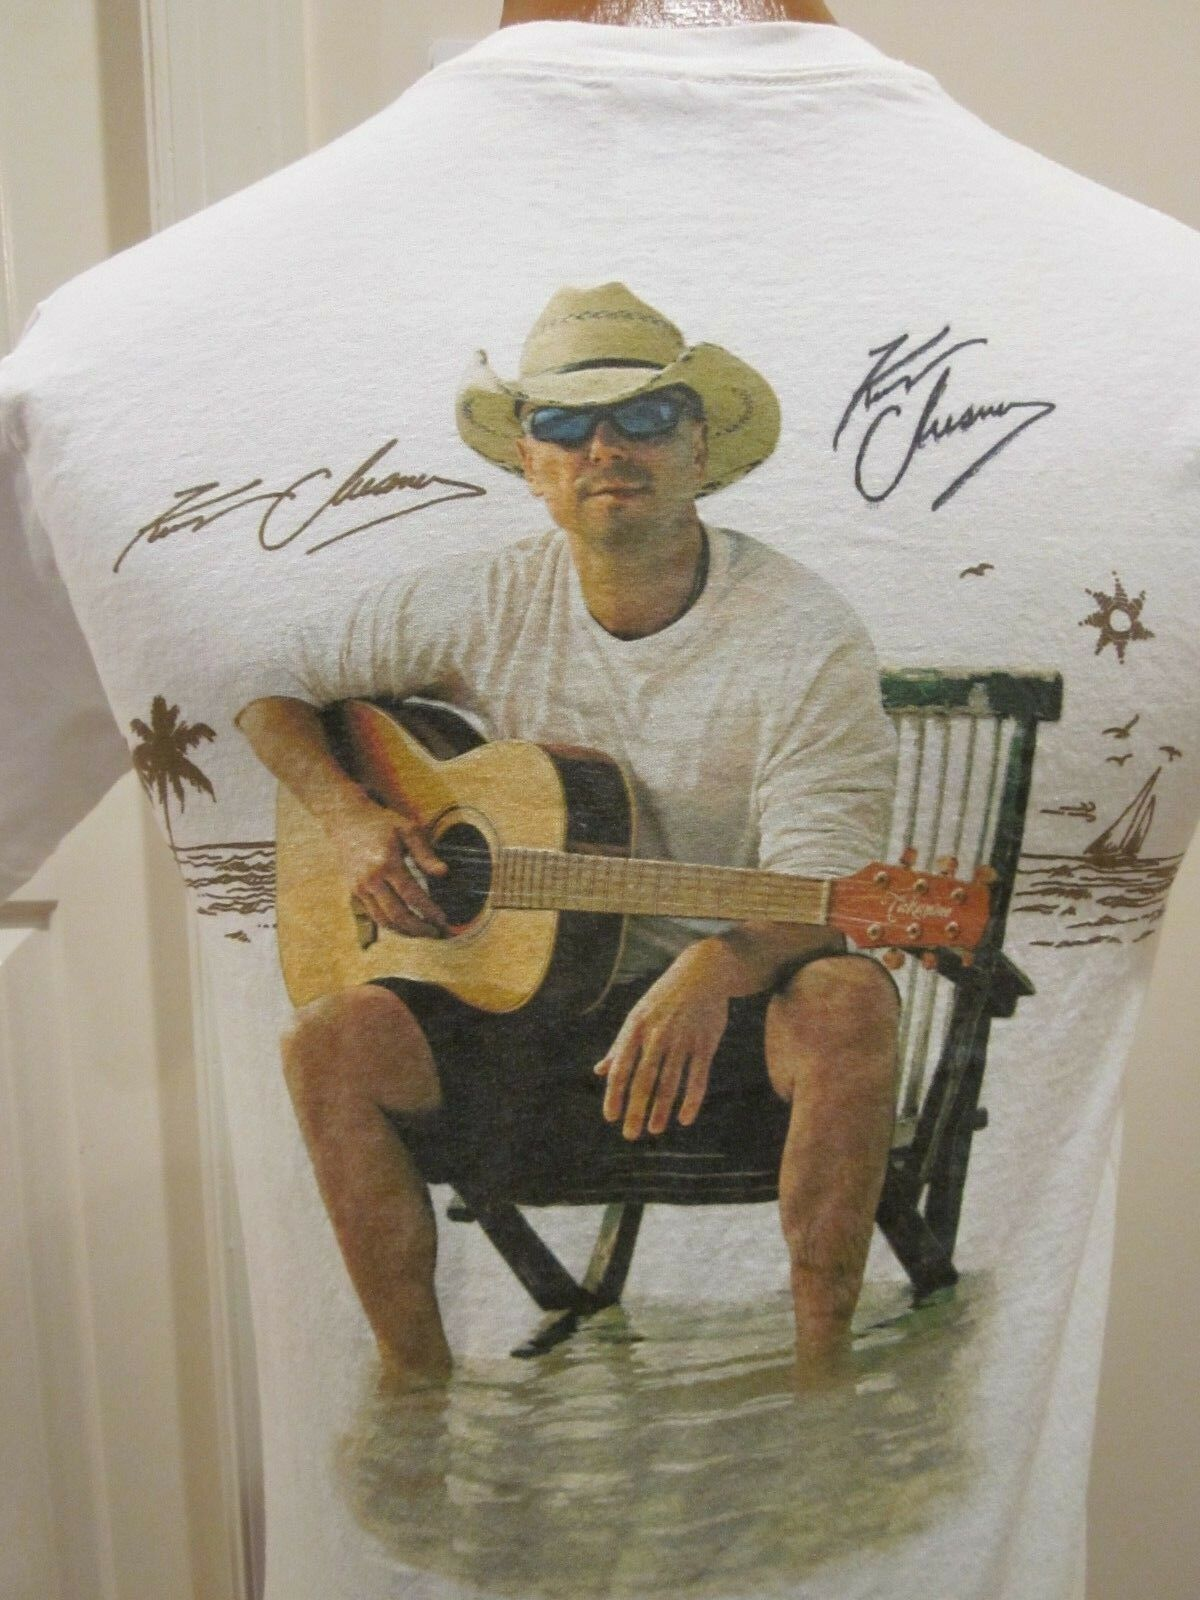 KENNY CHESNEY COSTA SUNGLASSES T SHIRT CIRCA 2012, WITH AUTOGRAPHS